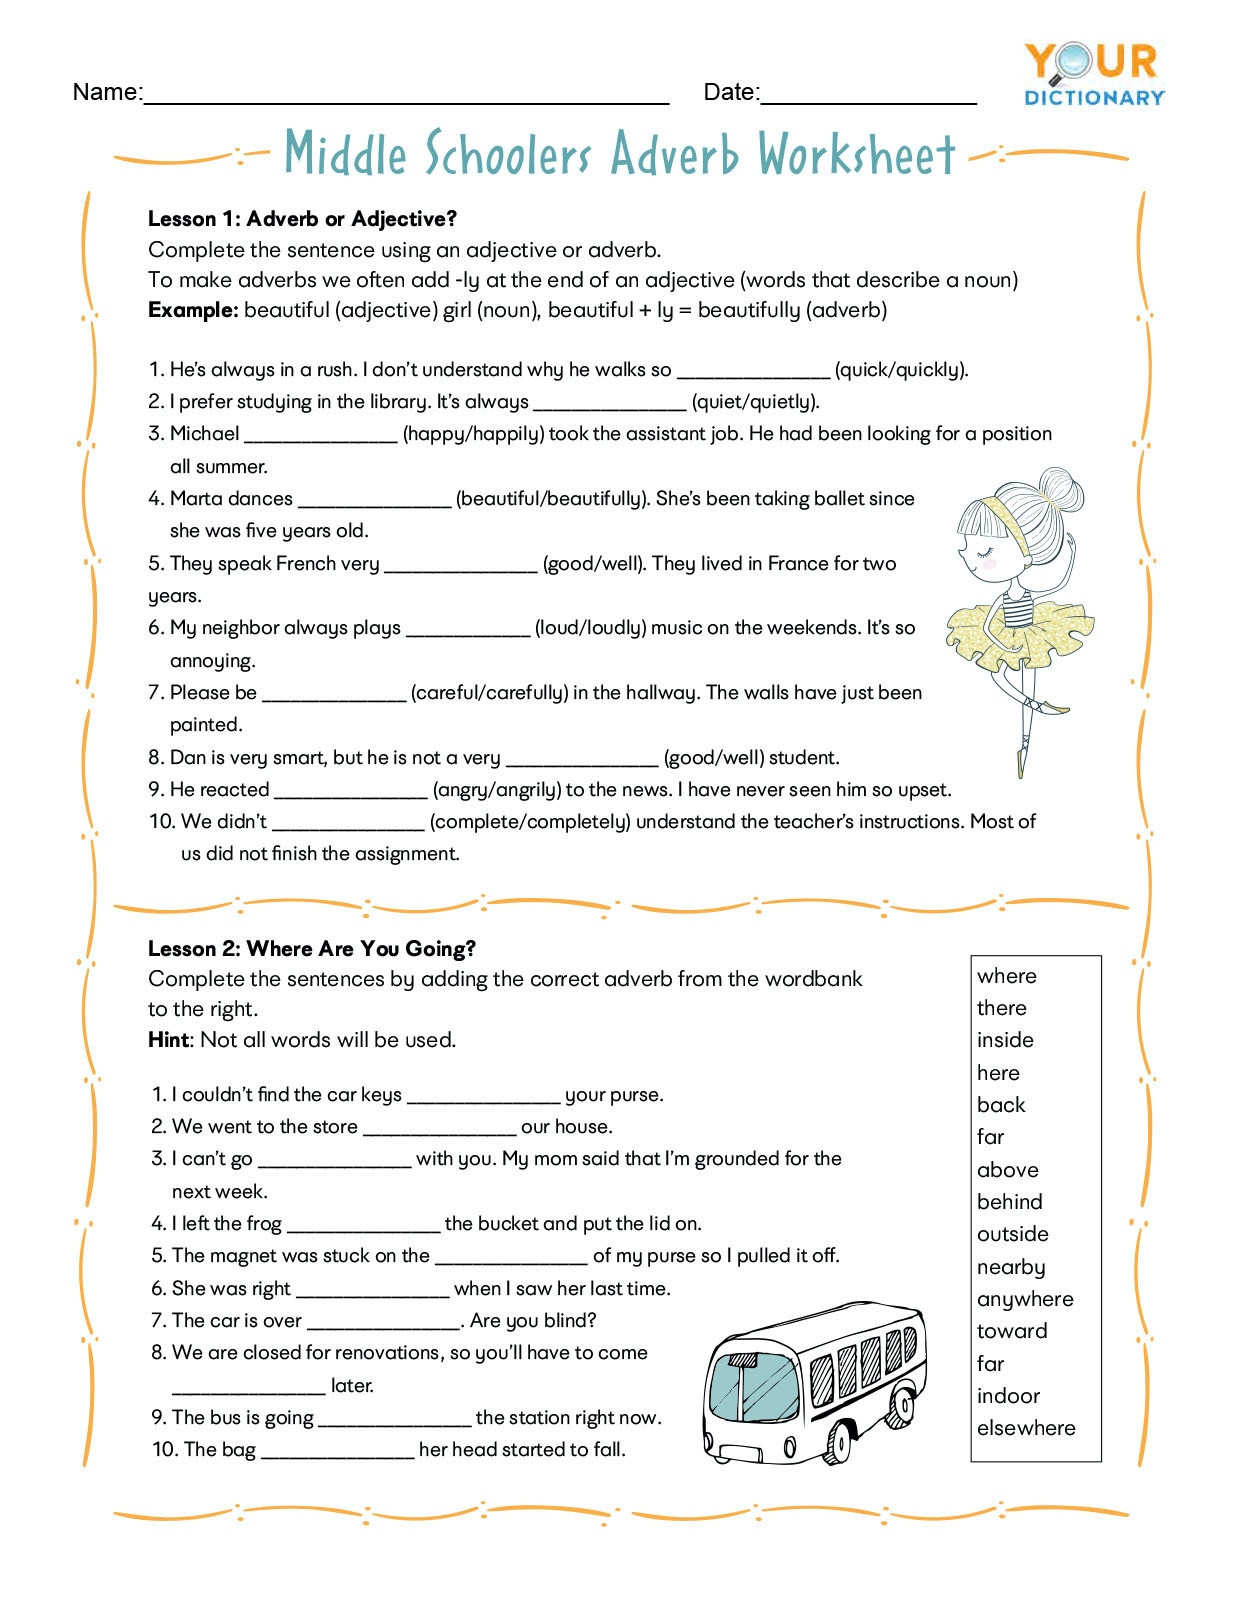 Study Skills Worksheets Middle School Adverb Worksheets for Elementary and Middle School